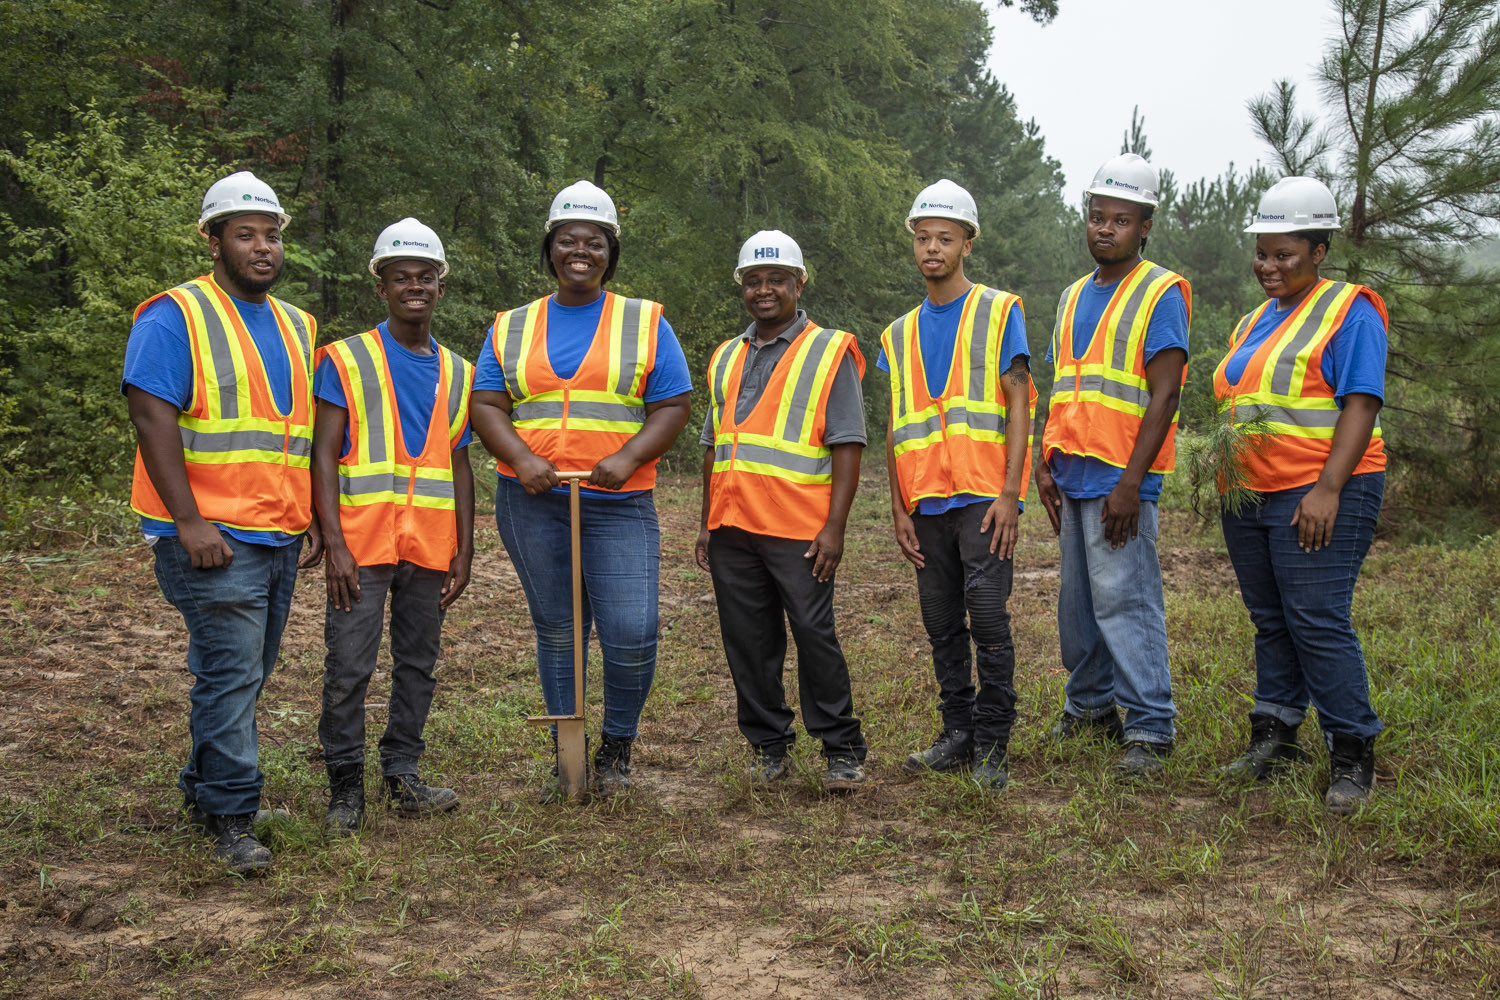 Norbord-sponsored Framing Students Ready to Take on the Jobsite